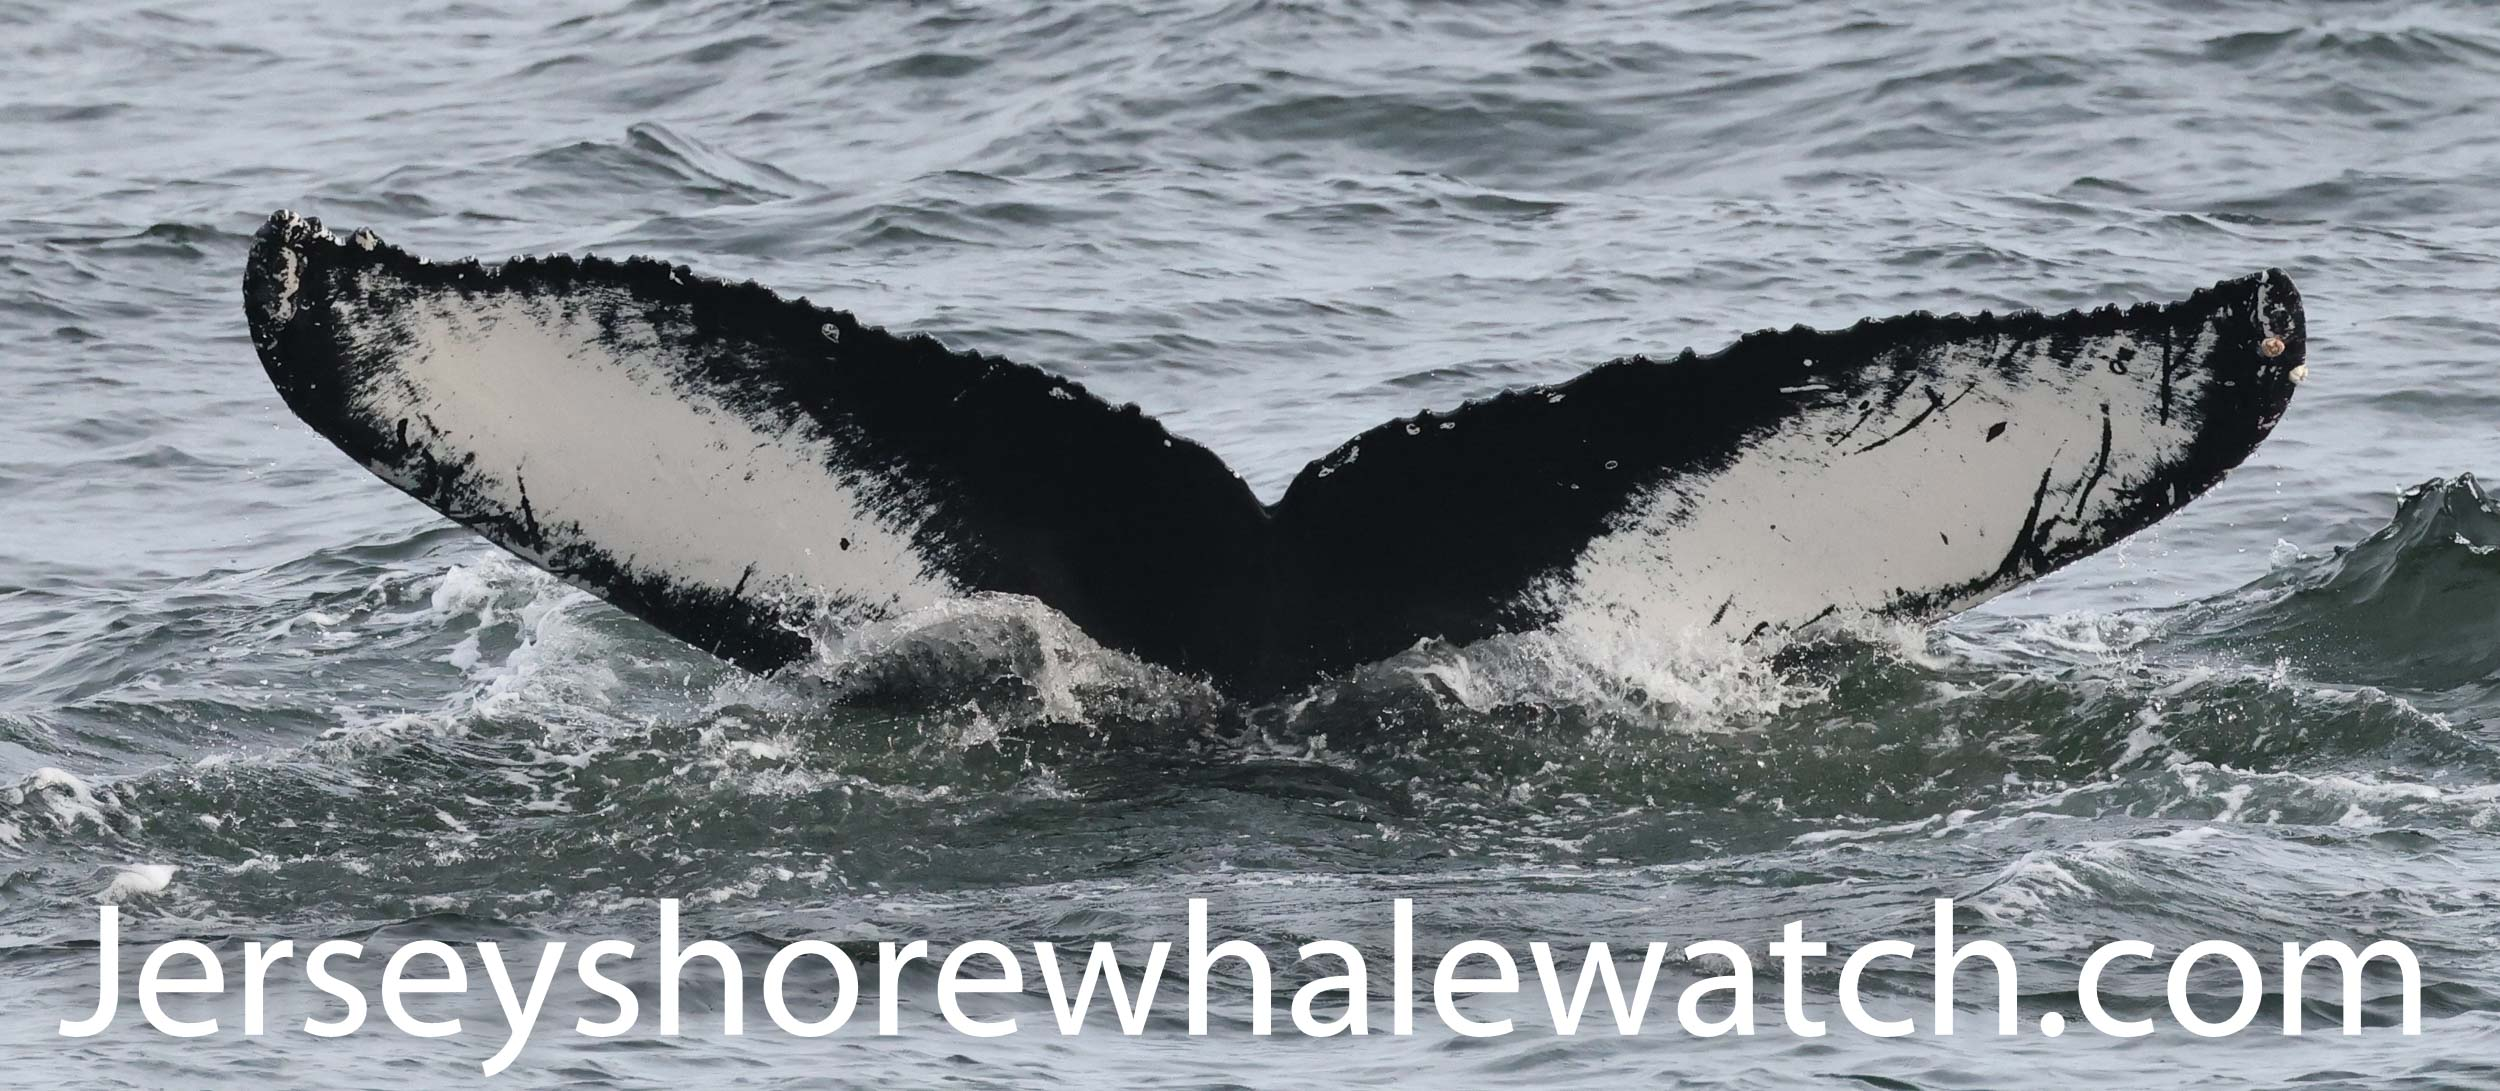 , Photos October 10th whale watching trip, Jersey Shore Whale Watch Tour 2020 Season